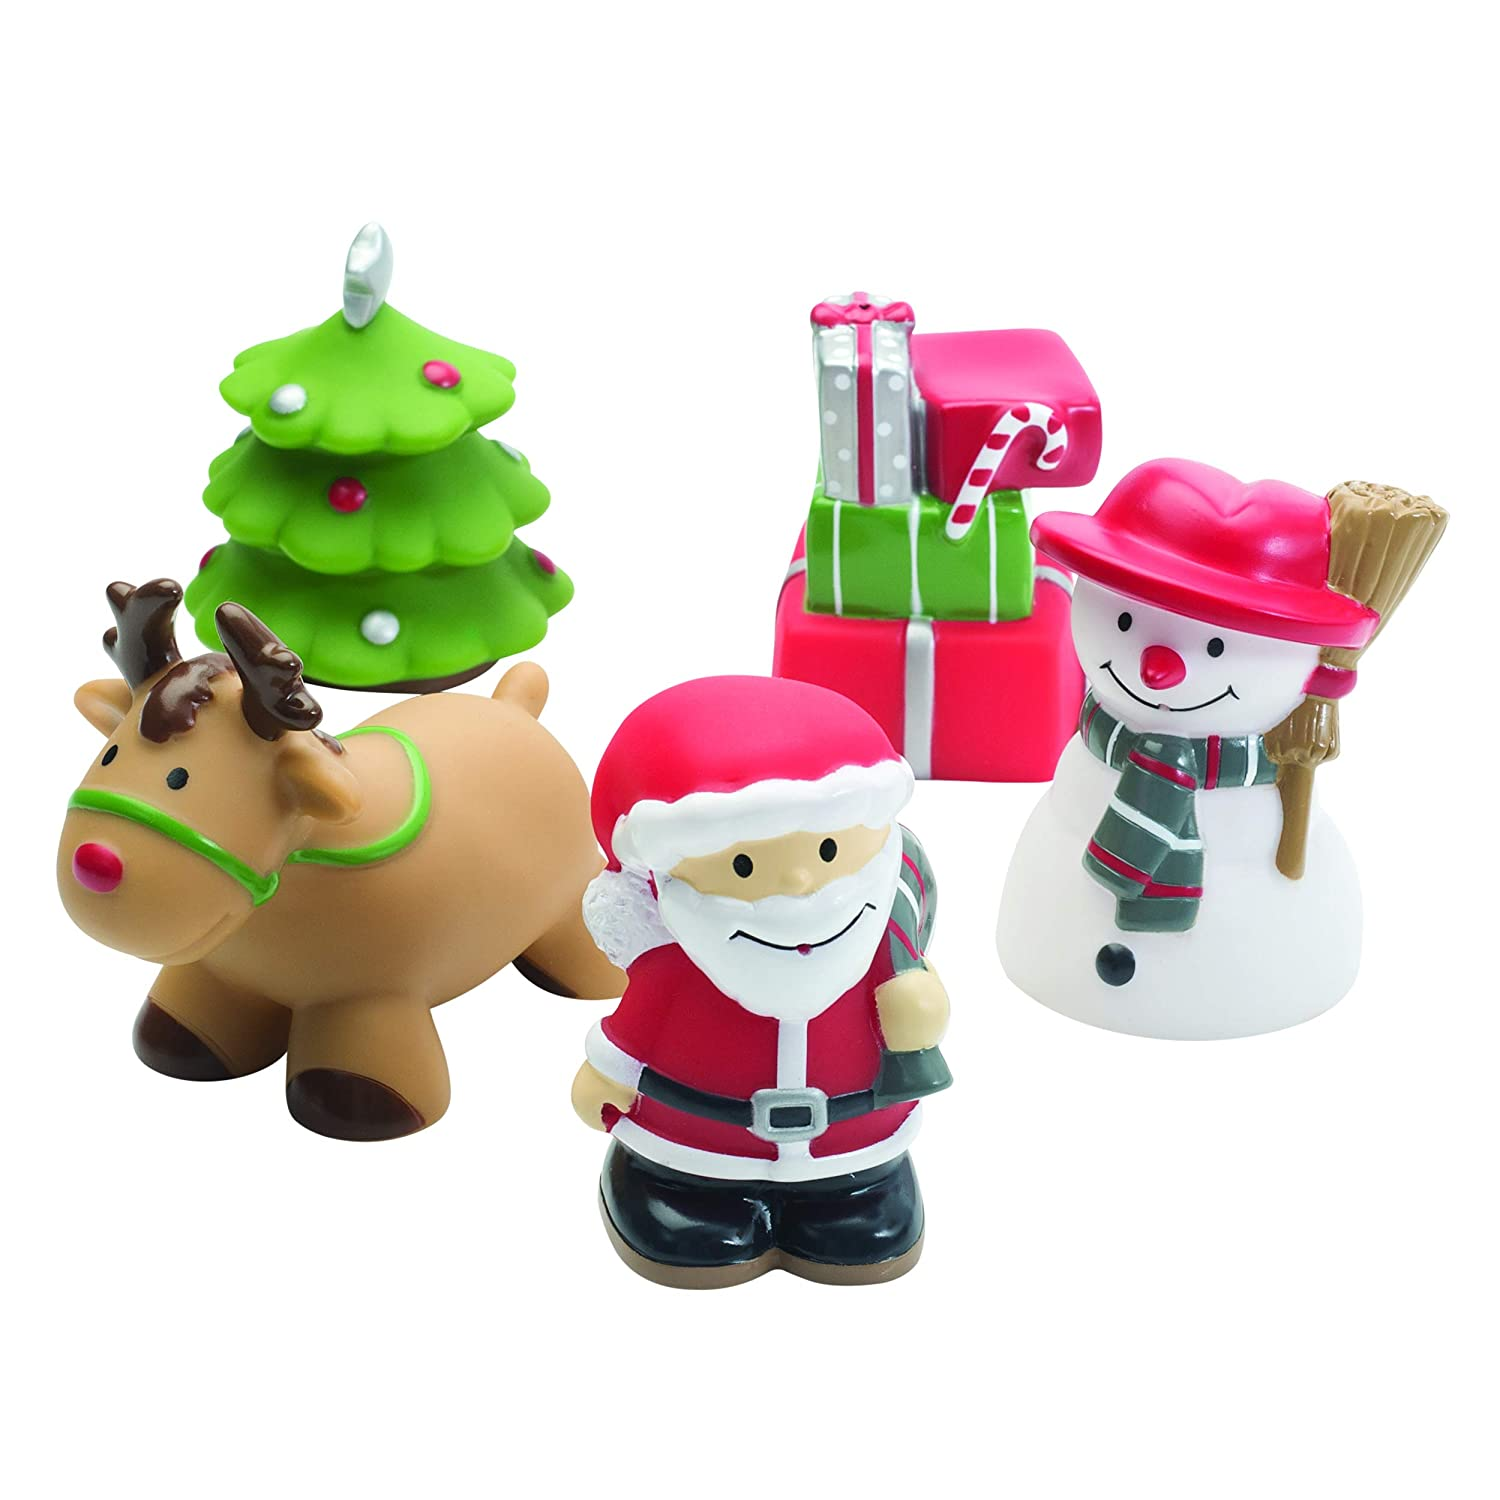 Best Selling Christmas Elegant Baby Rubber Squirties Water Bath Minneapolis Super intense SALE Mall